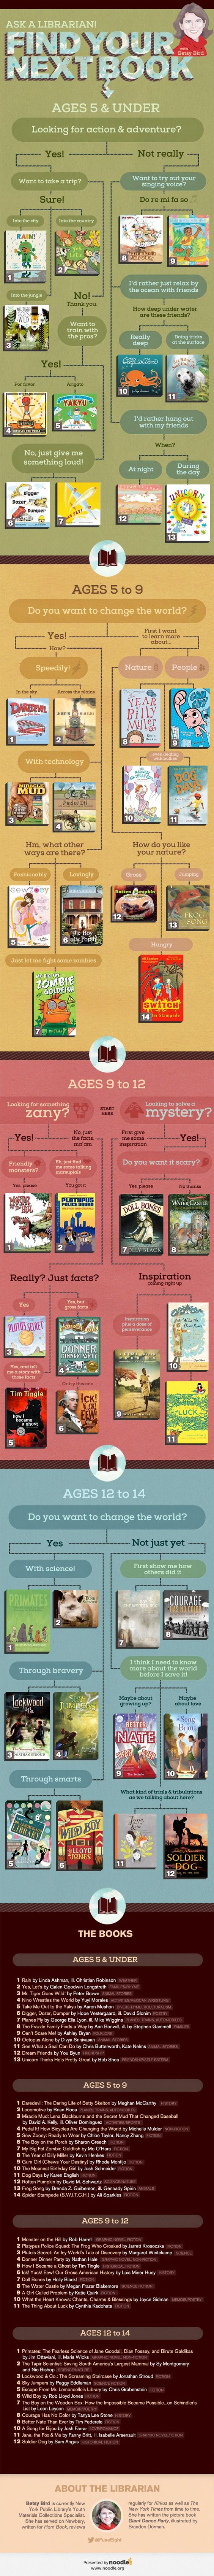 Find your next book Ages 0-14 Recommendations from NYPL children's collections specialist Betsy Bird #TeachNYPL #Reading